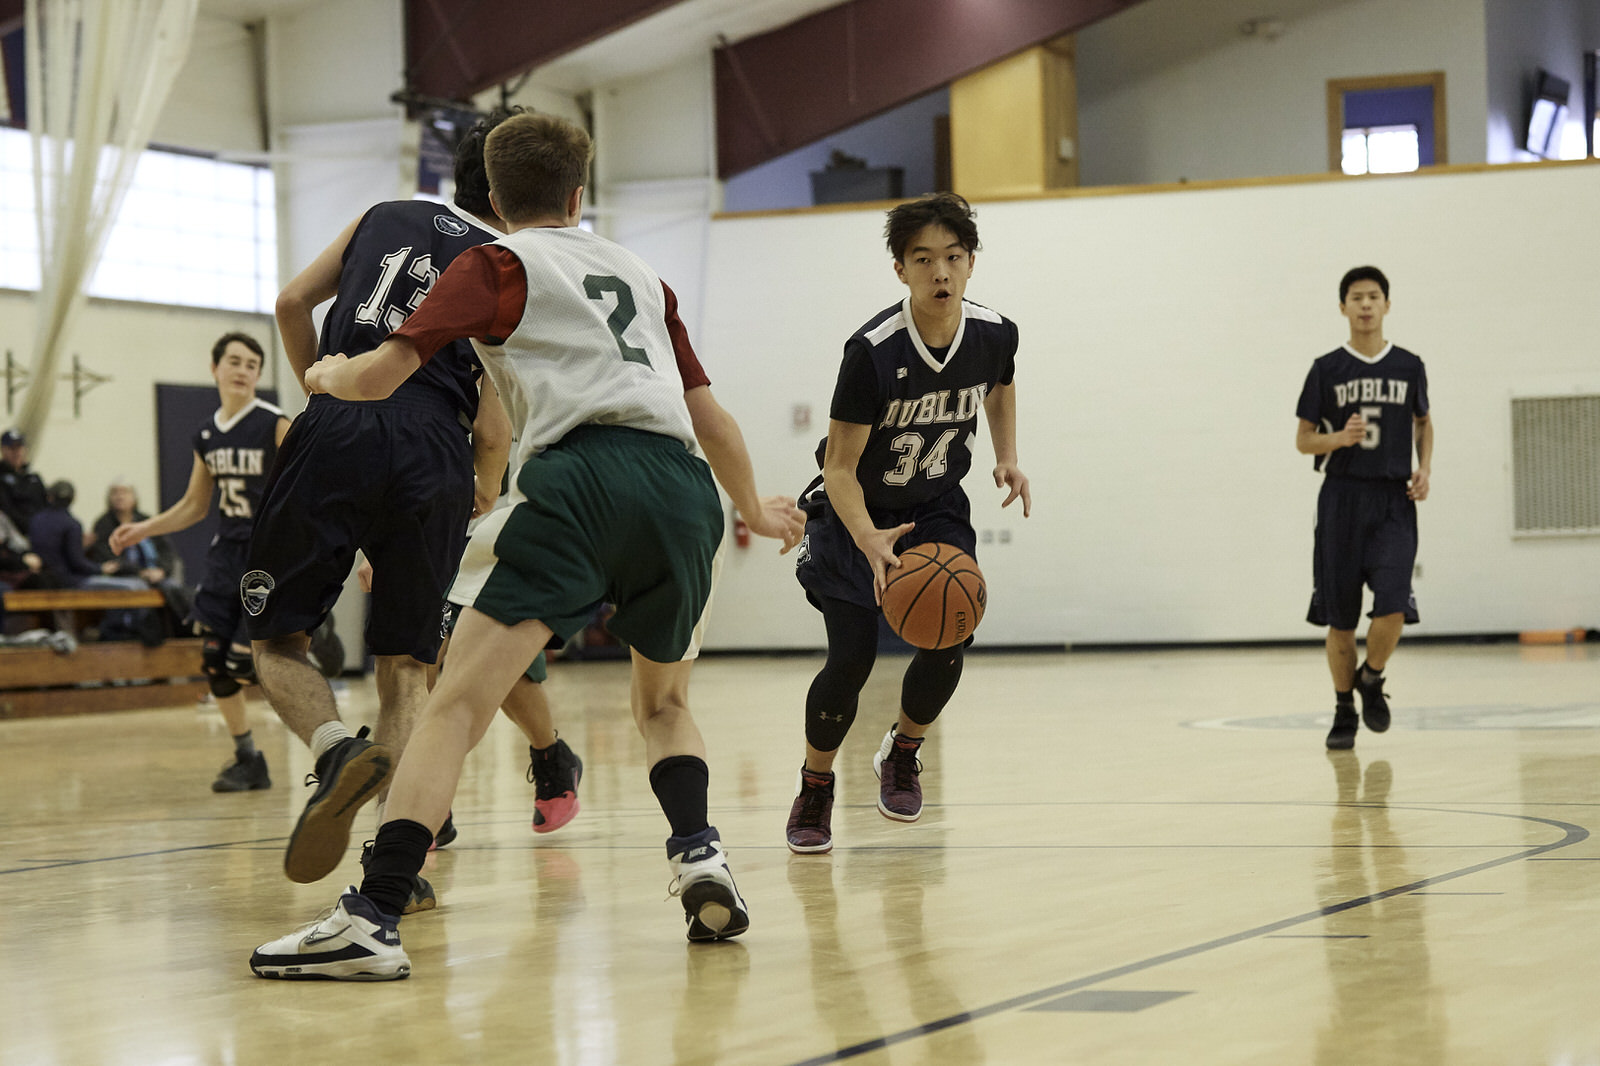 Dublin JV Boys Basketball vs High Mowing School - Jan 26 2019 - 0161.jpg